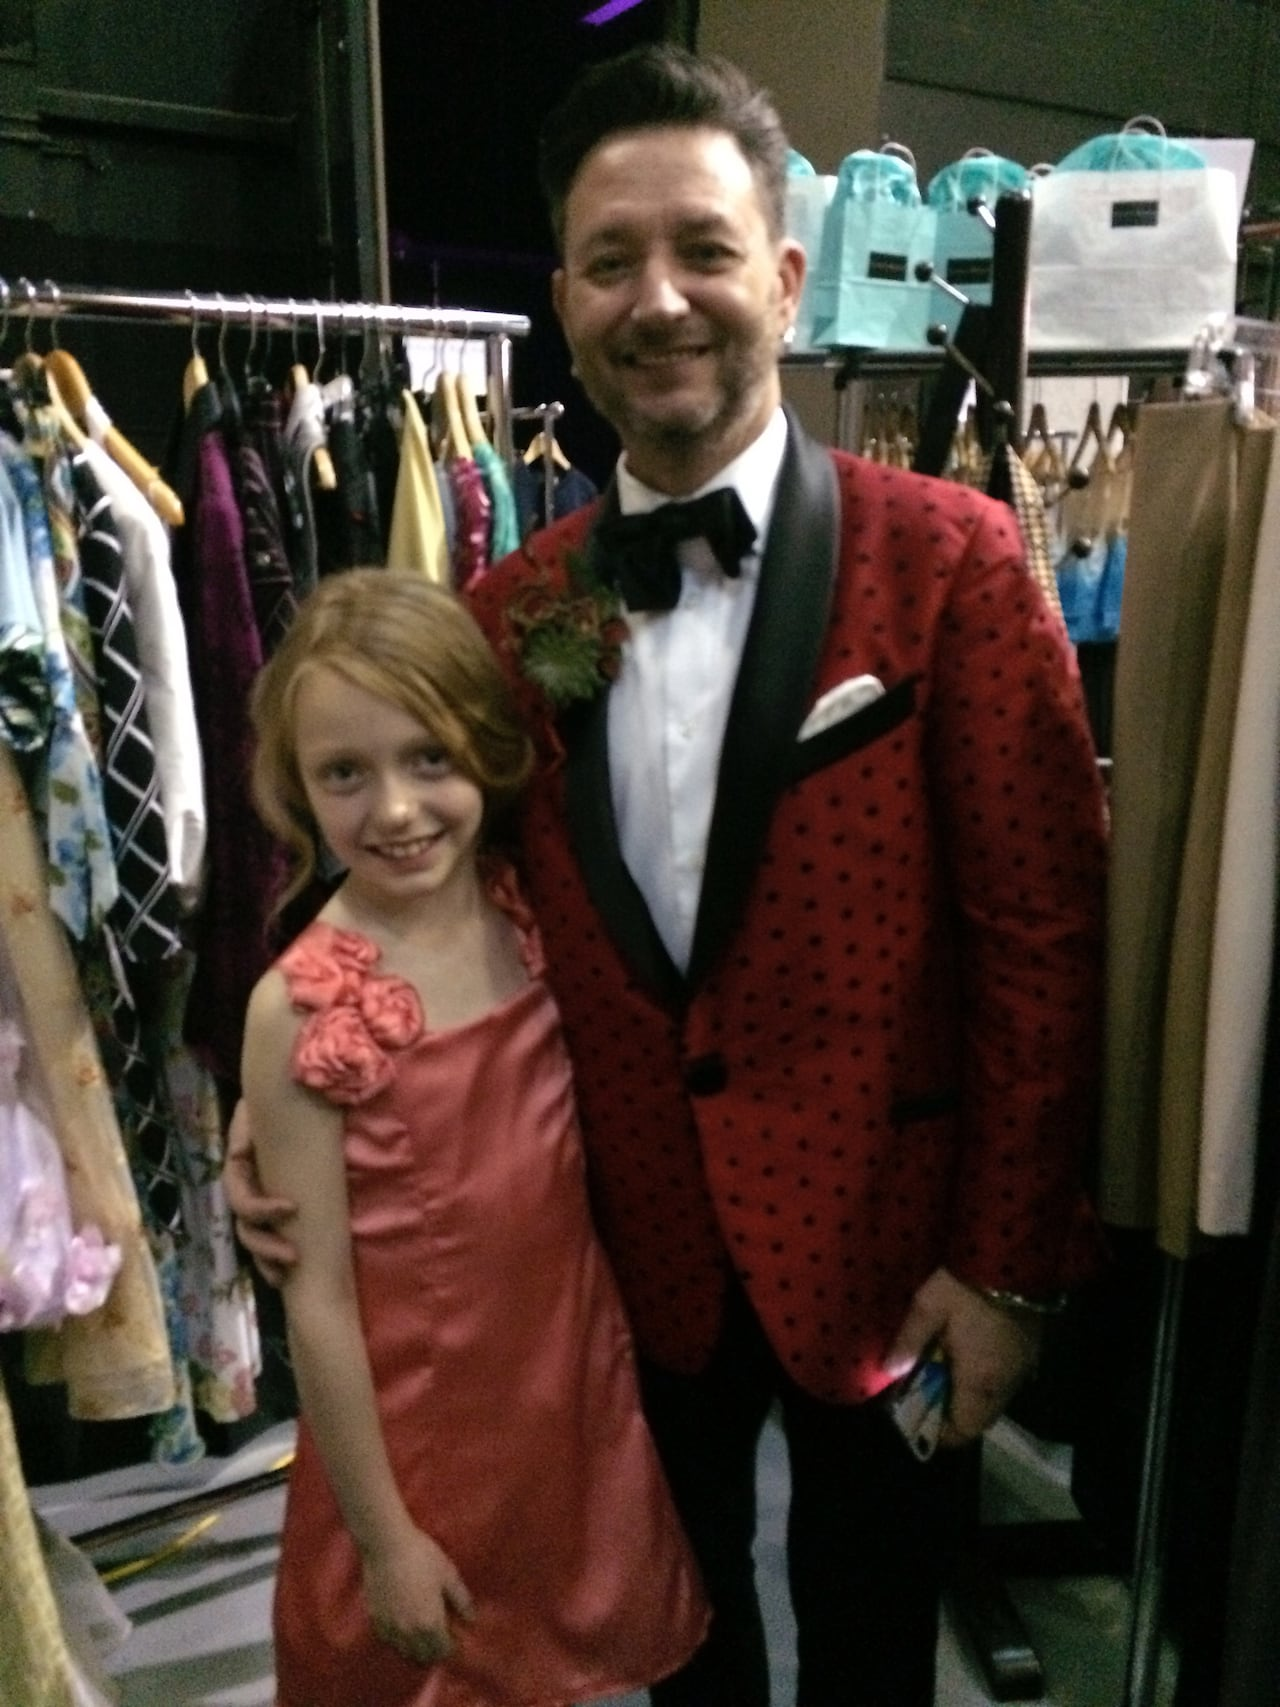 It S Very Bold 11 Year Old Designer Launches 1st Collection At Sask Fashion Week Cbc News